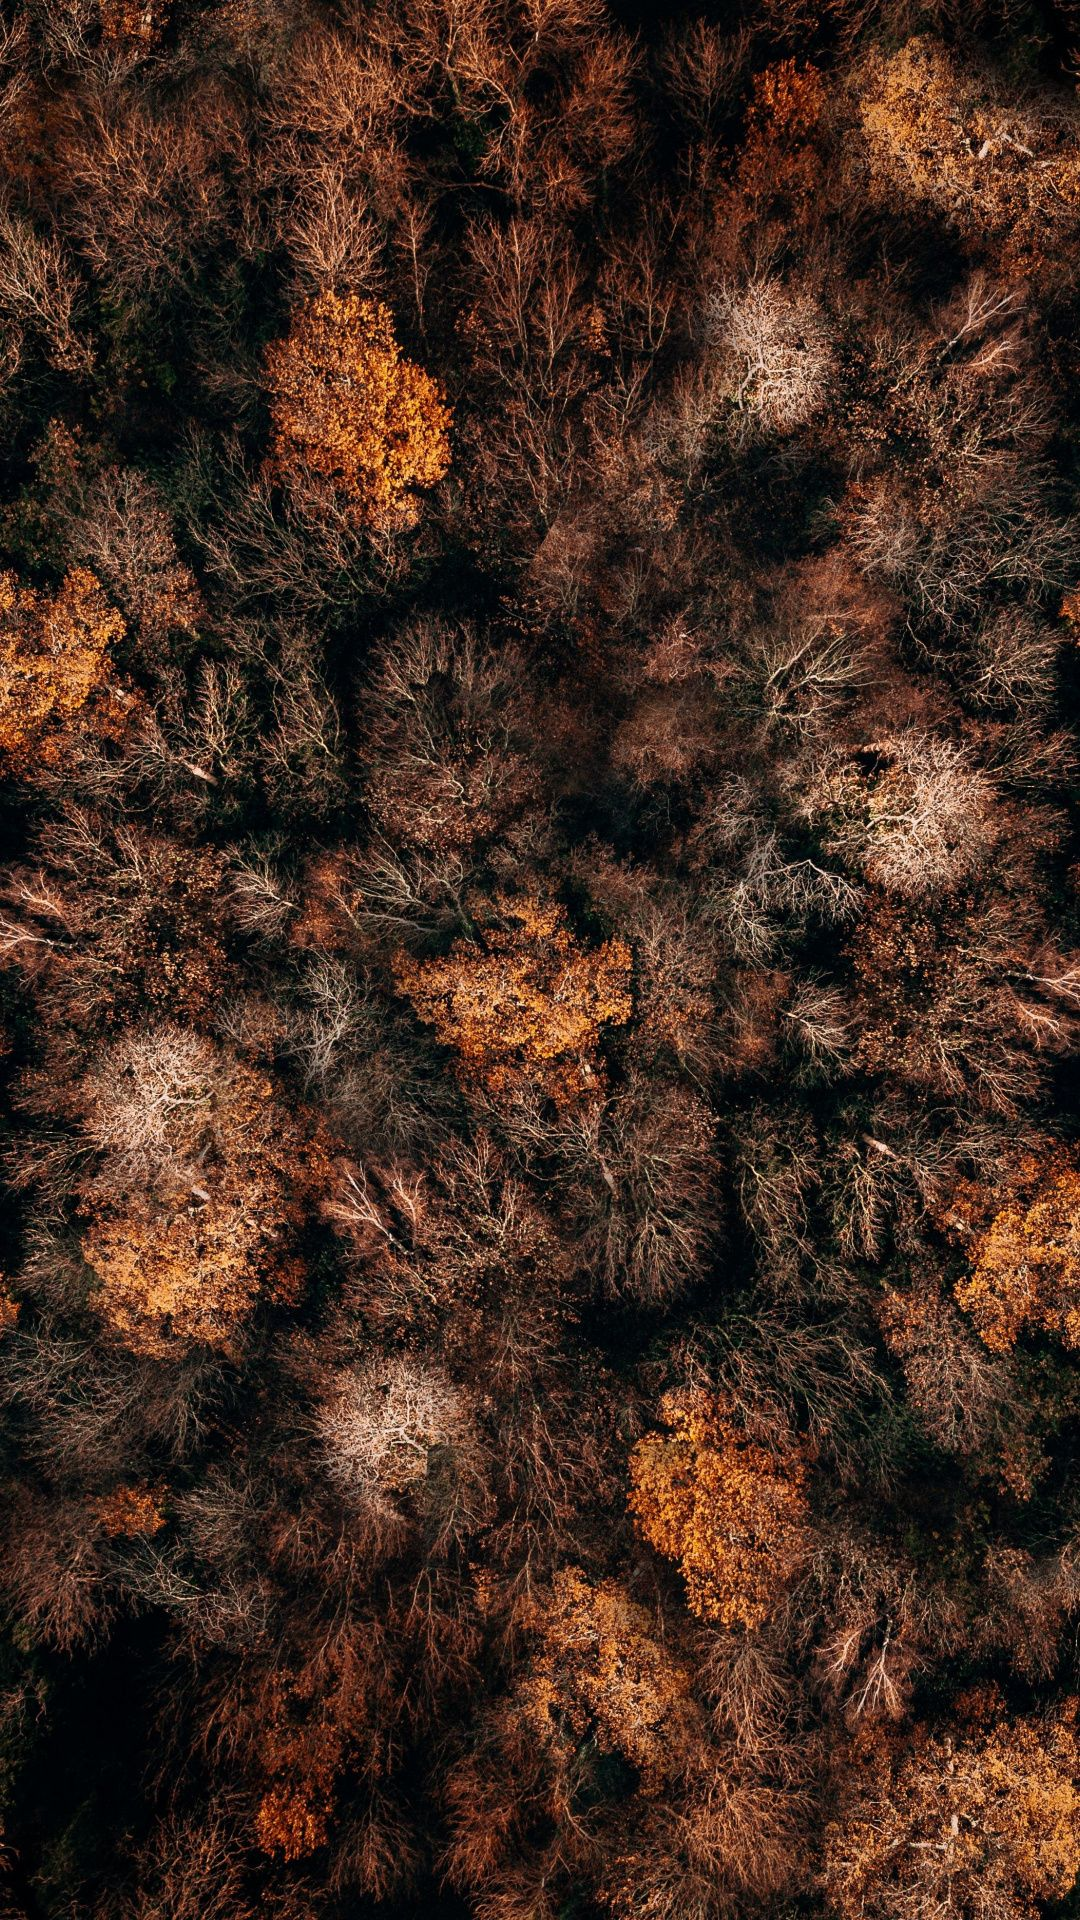 Aerial Shot Autumn Nature Trees 1080x1920 Wallpaper Desktop Wallpaper Live Wallpaper Iphone Phone Wallpaper